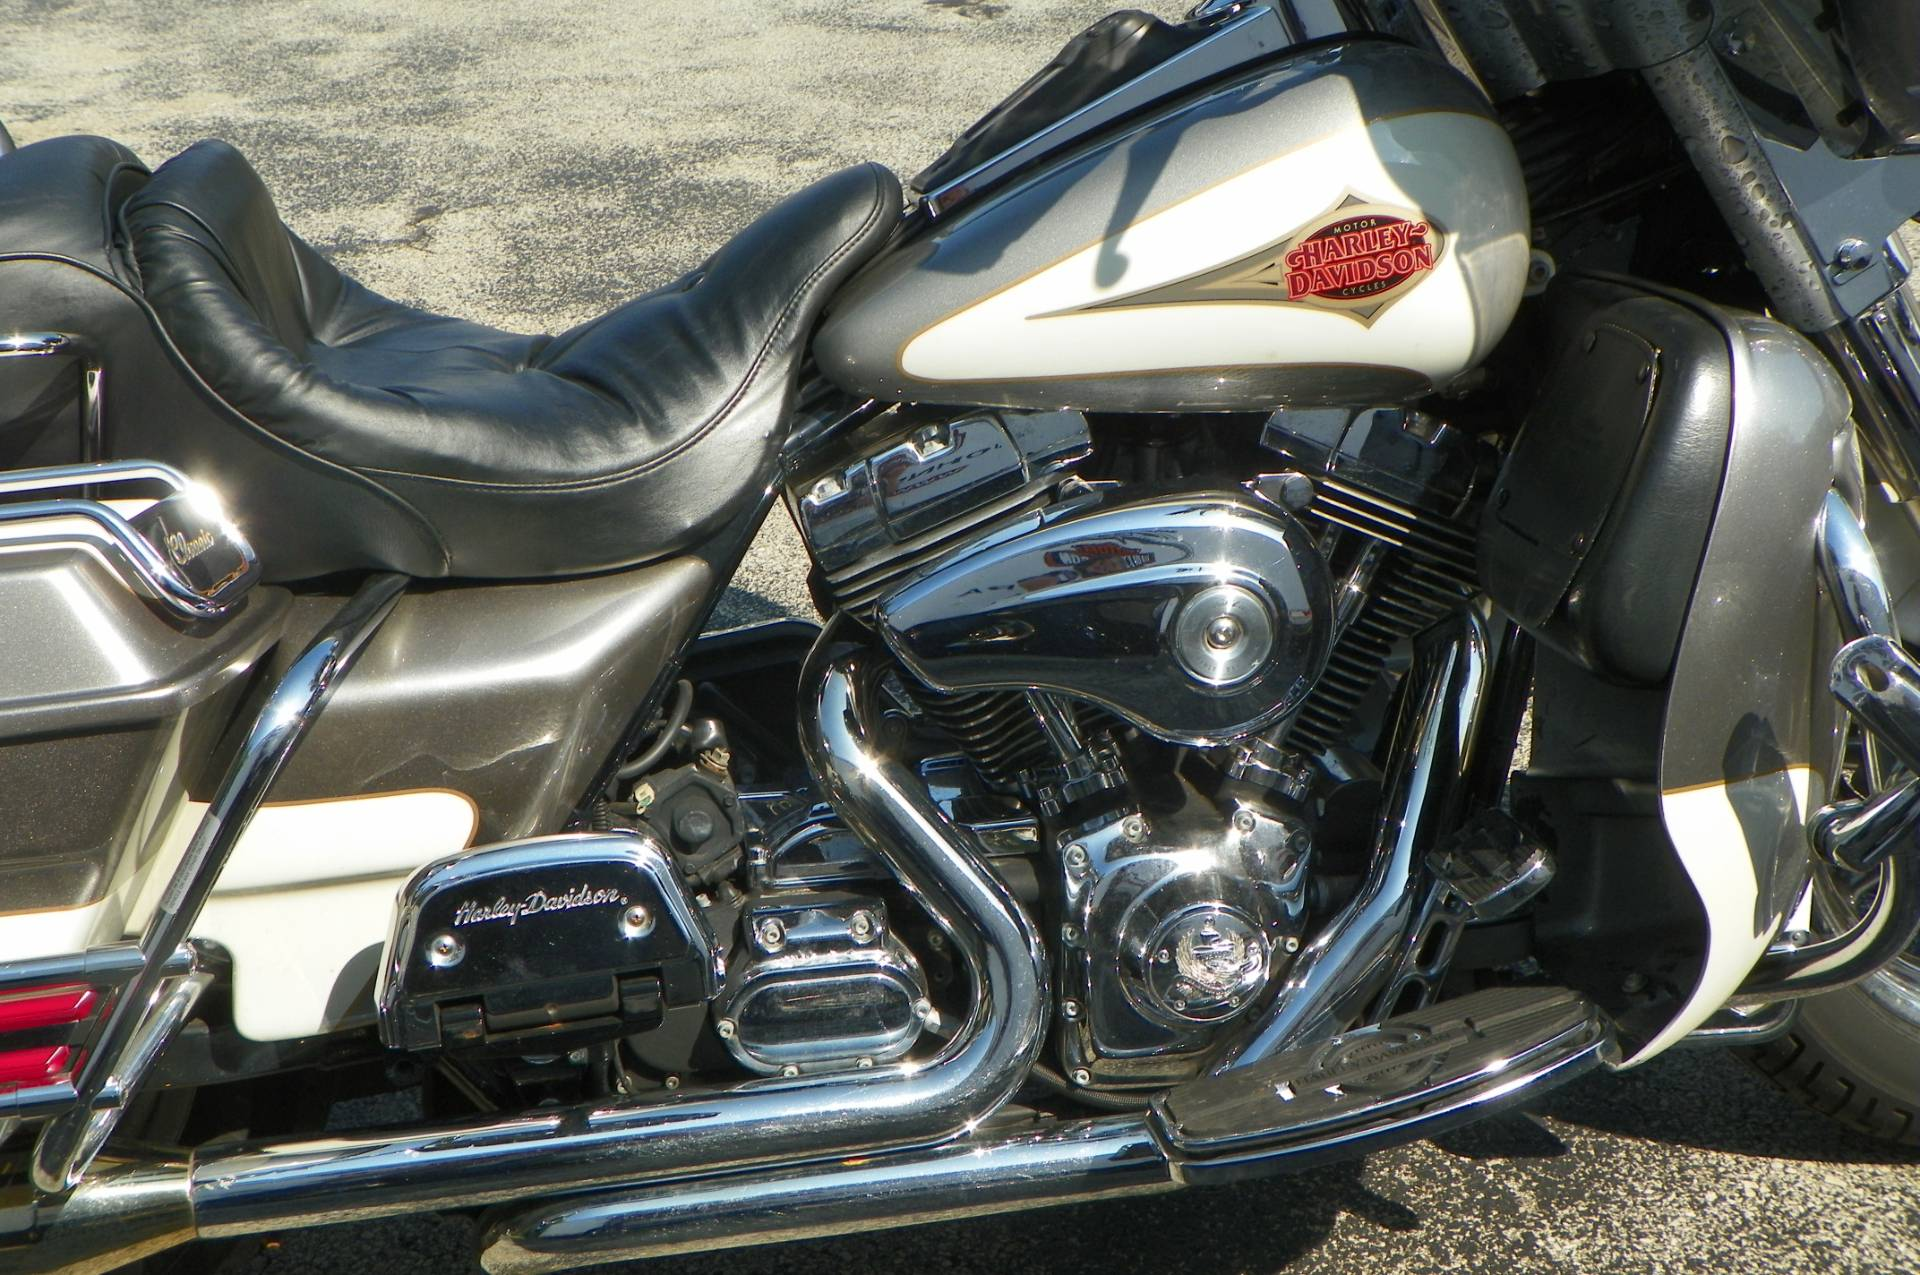 2000 Harley-Davidson FLHTCUI Ultra Classic® Electra Glide® in Johnstown, Pennsylvania - Photo 2